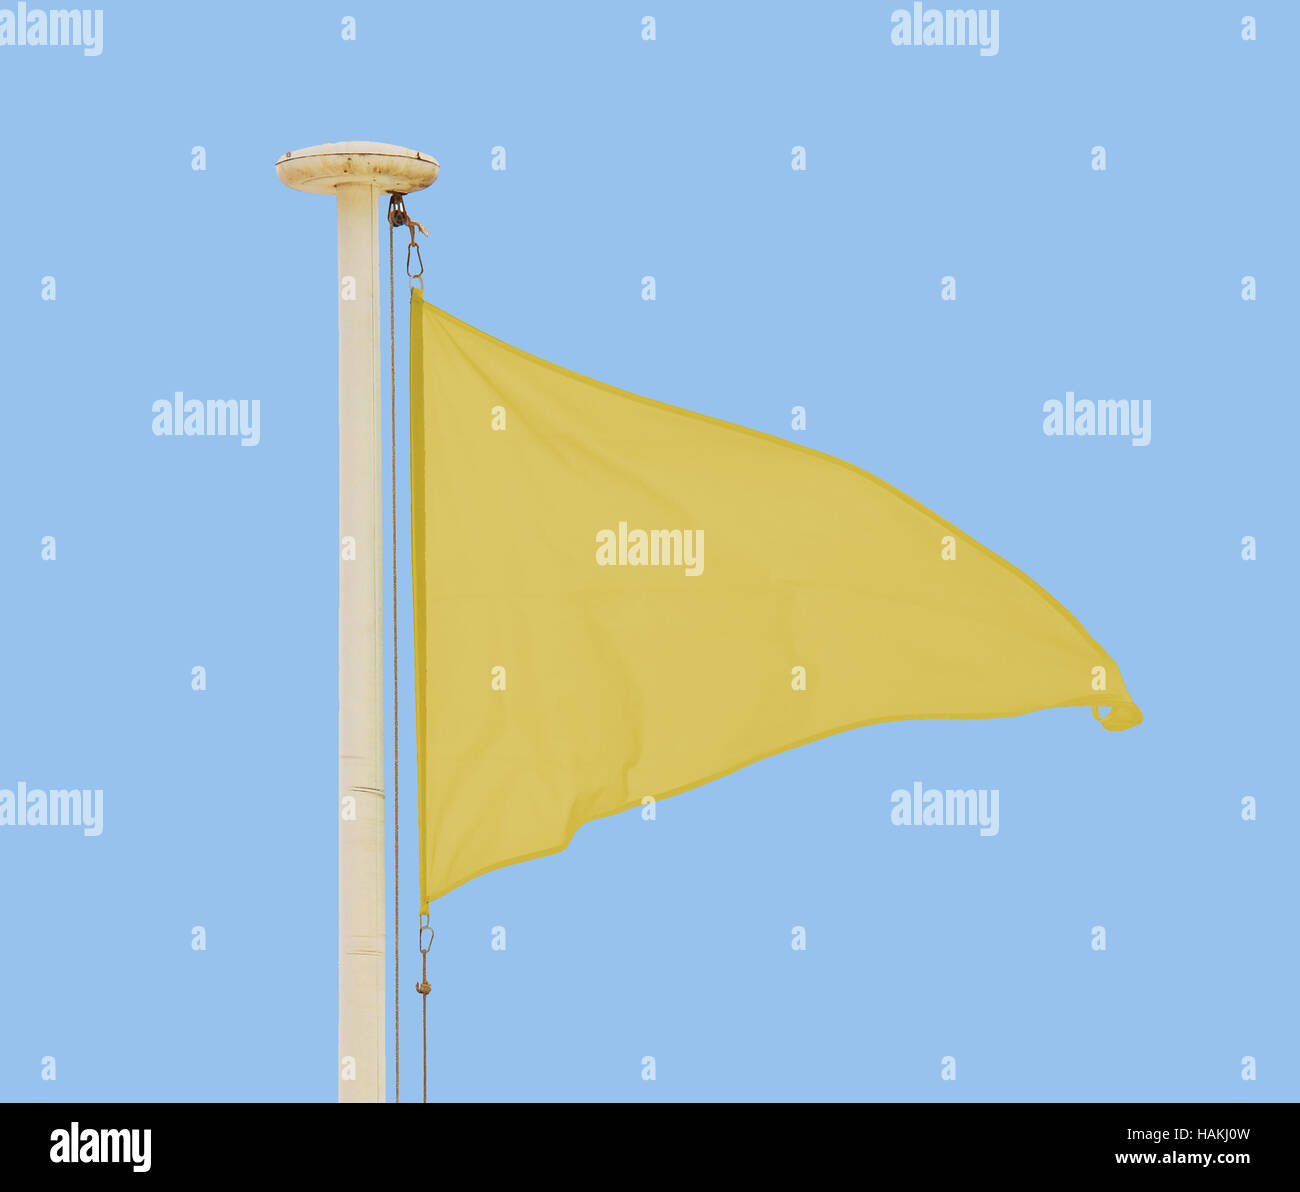 Yellow pennant flying in a brisk breeze against a pale blue sky - Stock Image